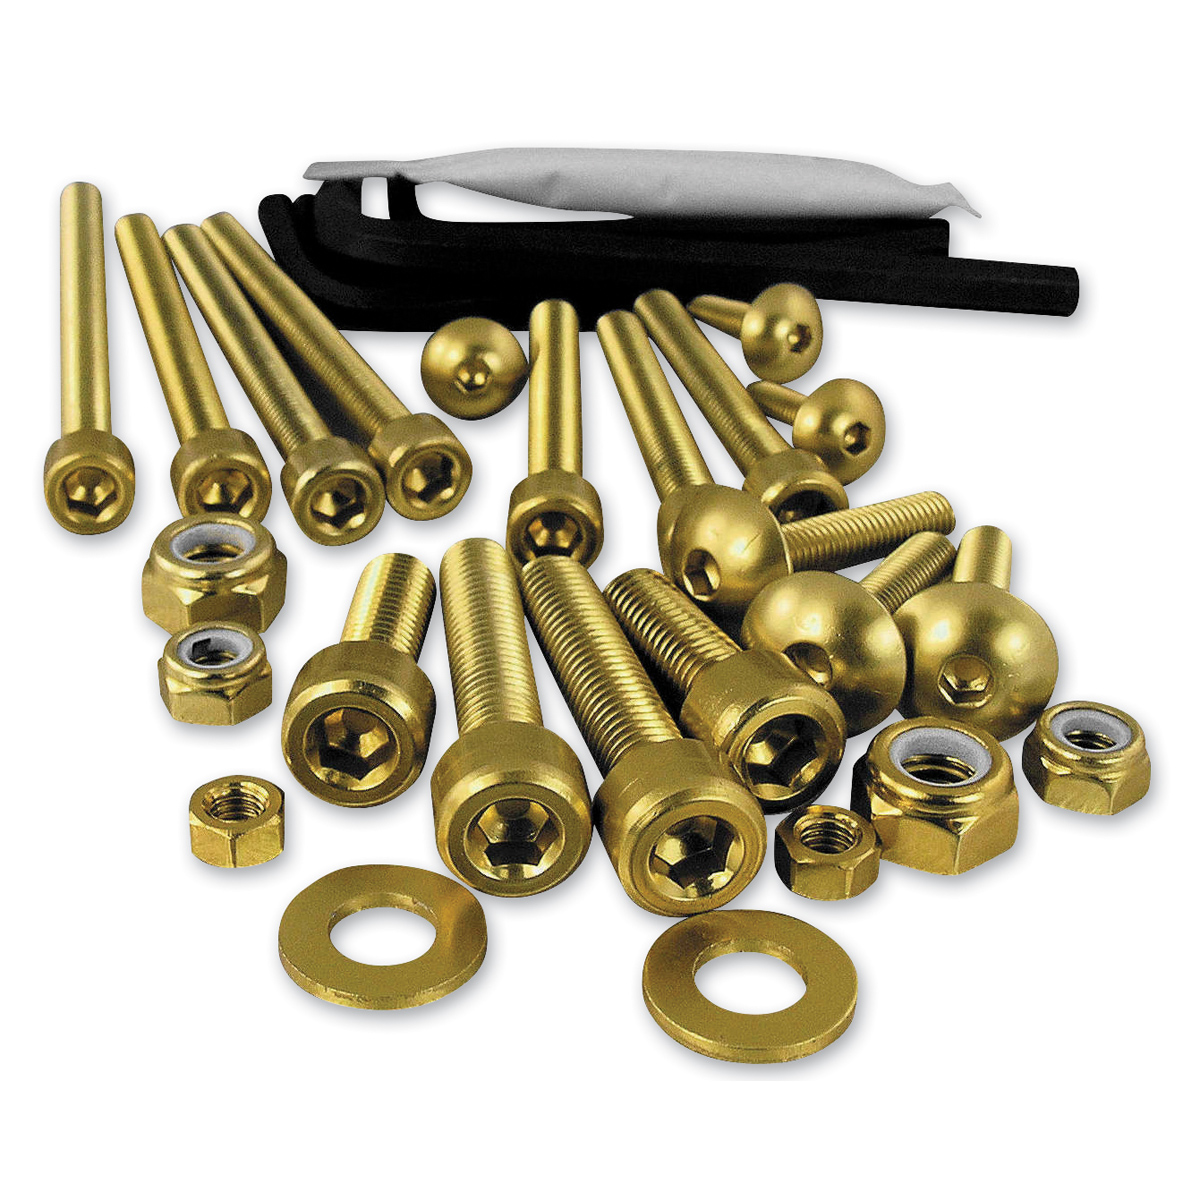 Pro-Bolt 25PC Gold Aluminum Metric Hardware Assortment - WSKIT25-G